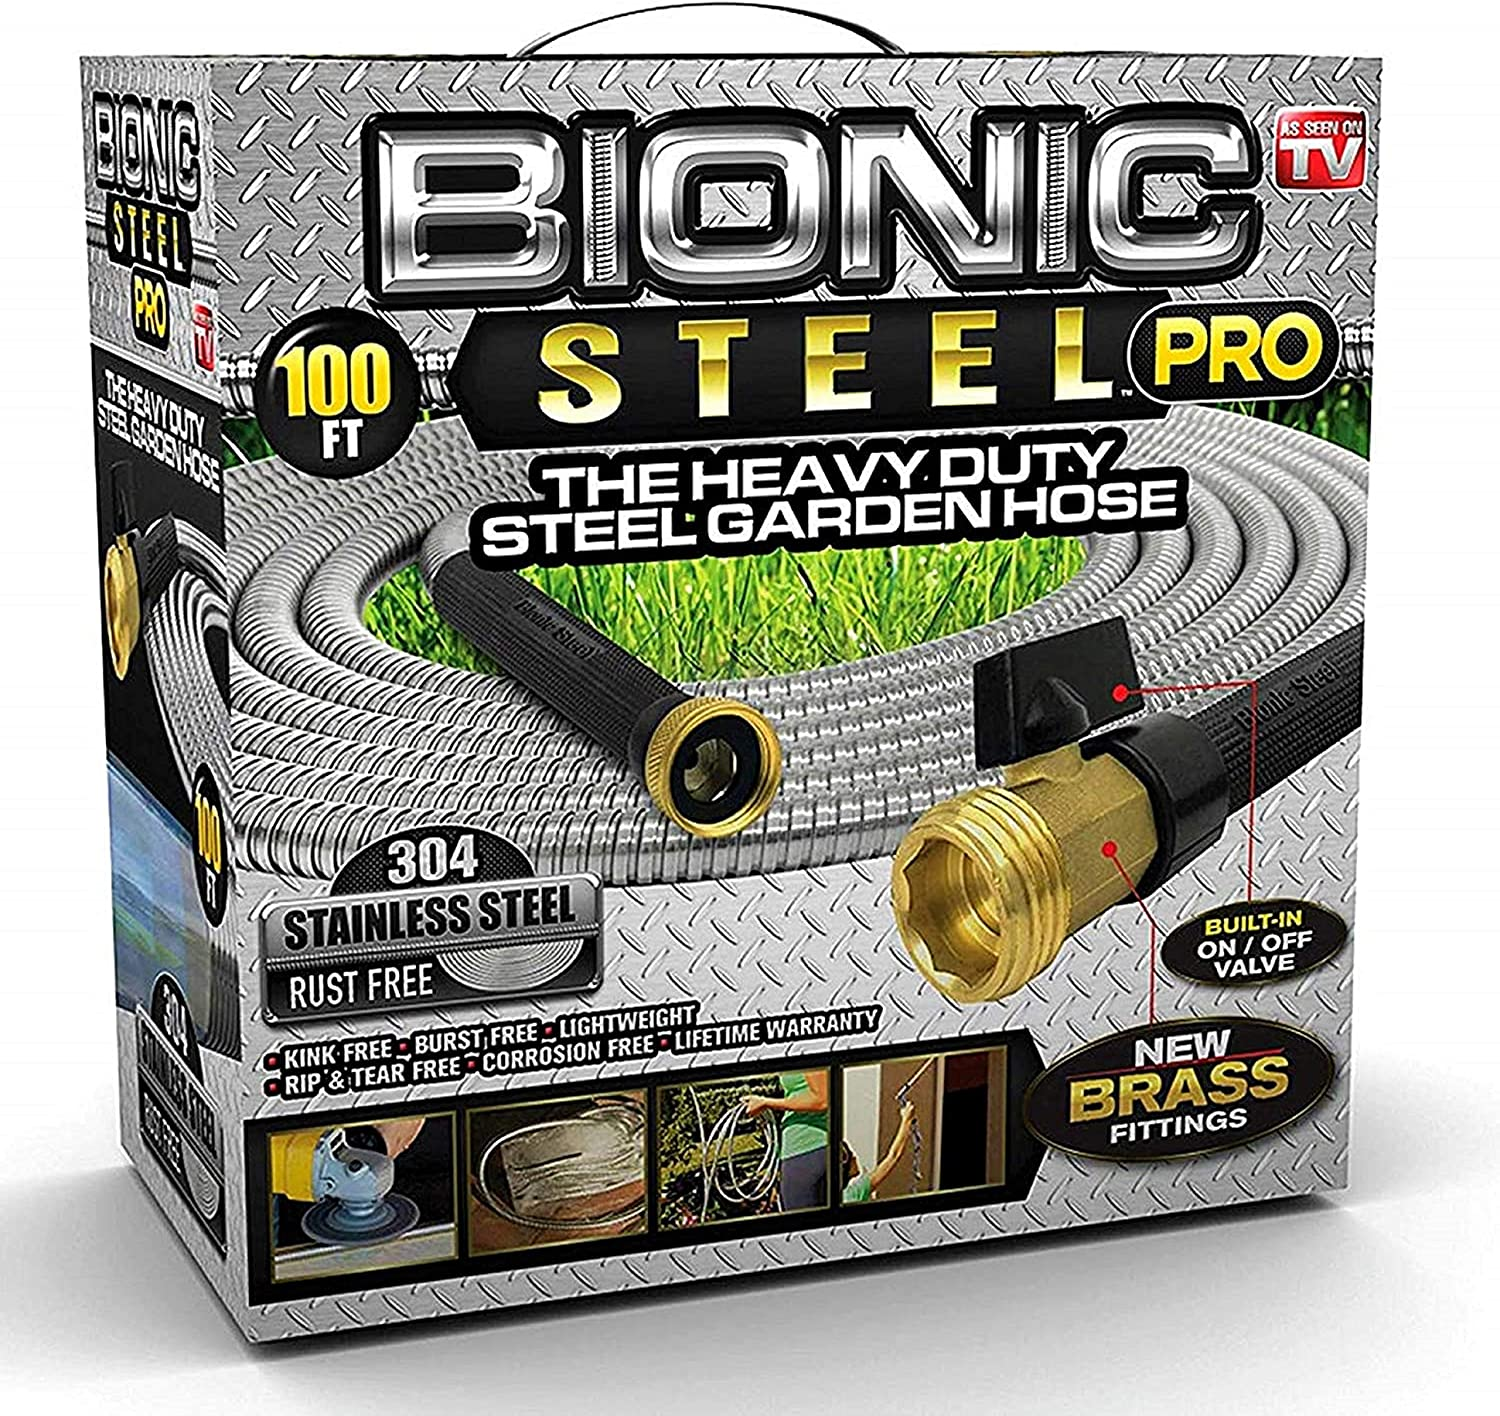 Bionic Steel Metal